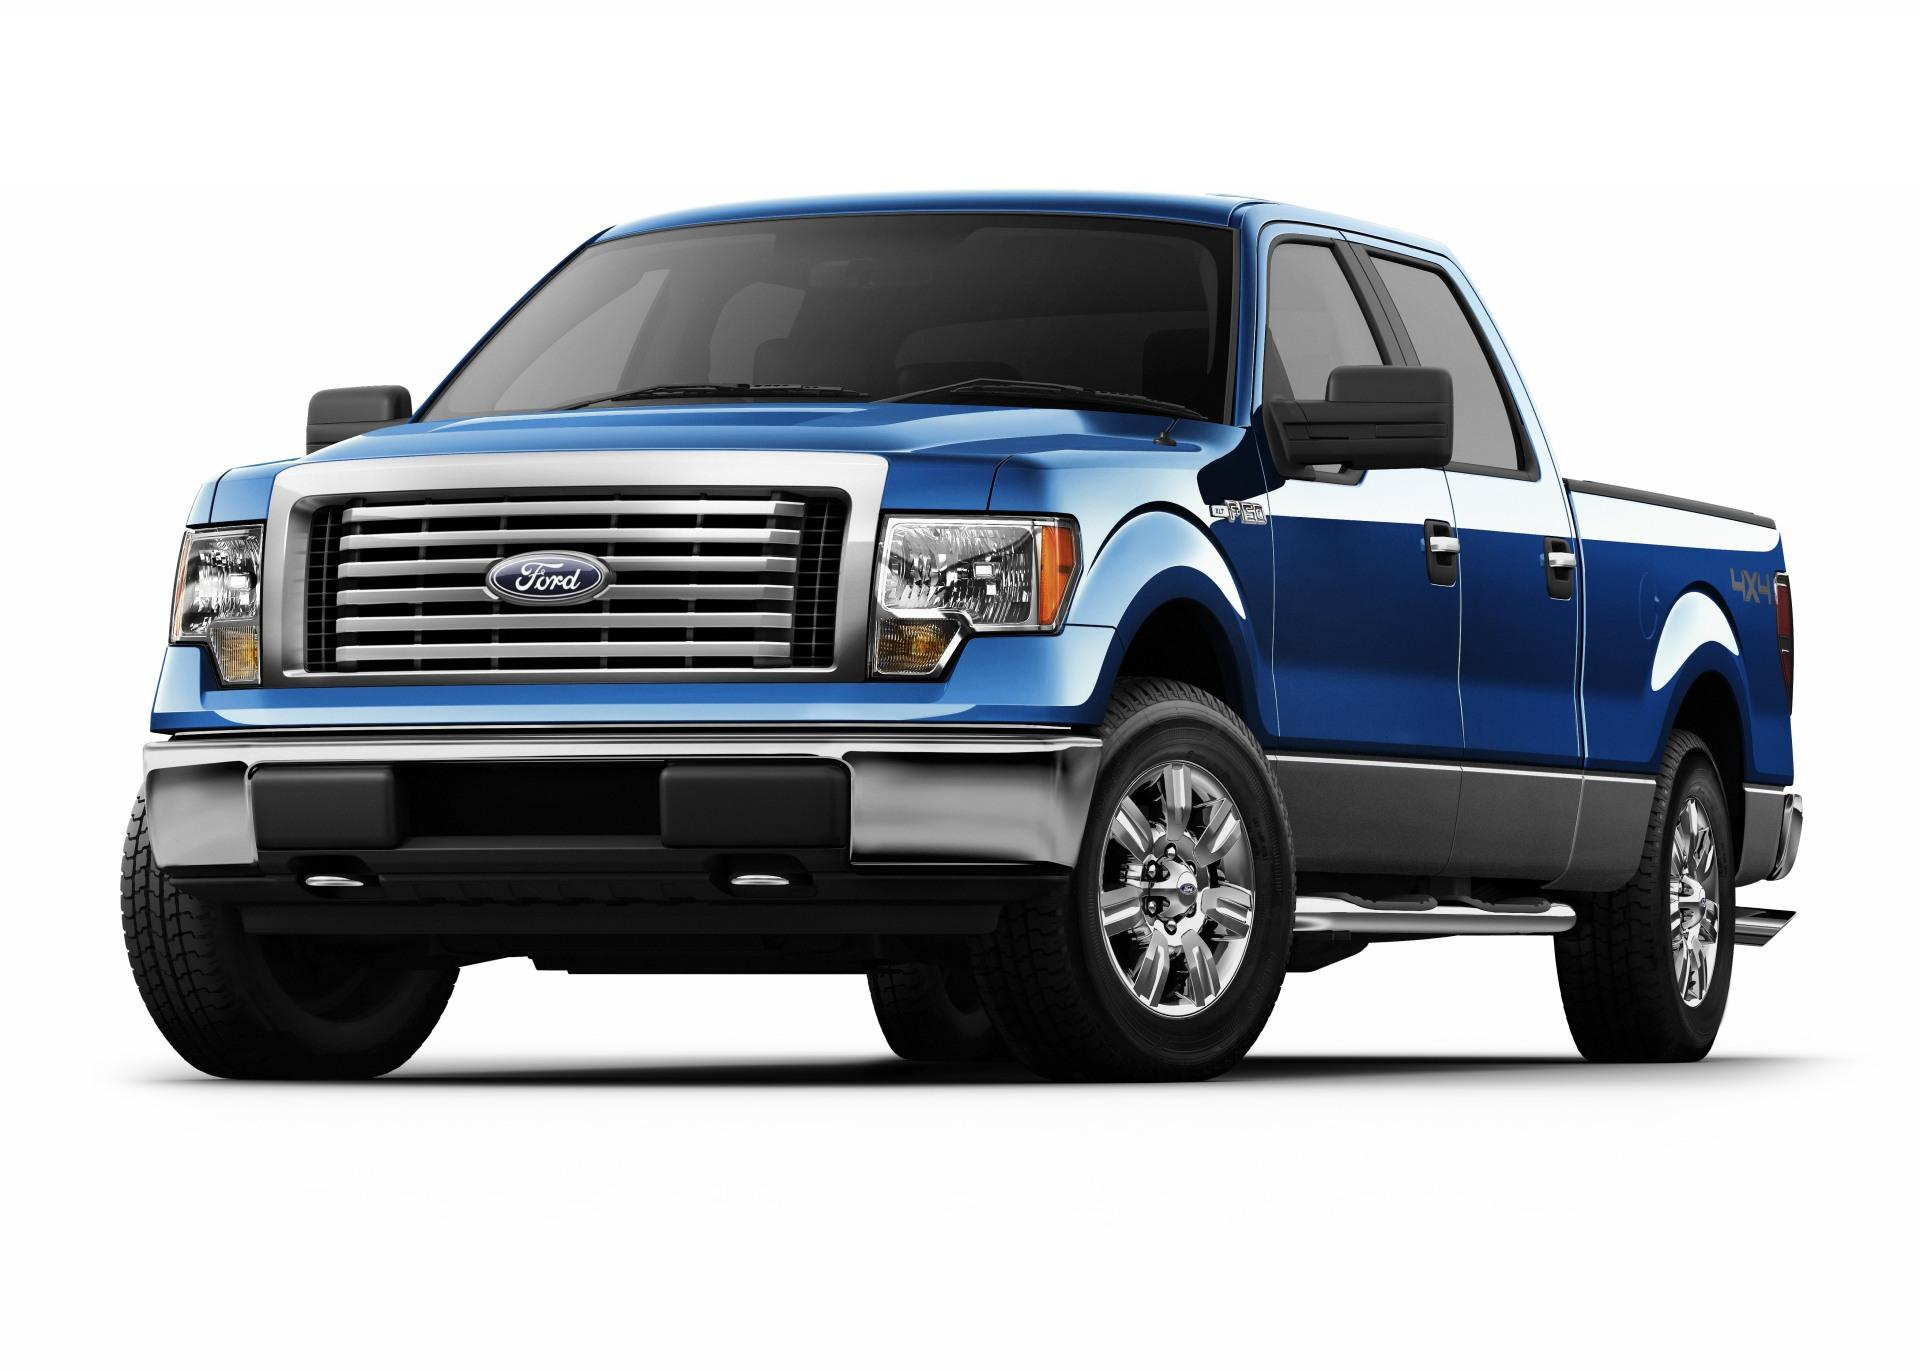 2010 Ford F-150 News and Information | conceptcarz.com